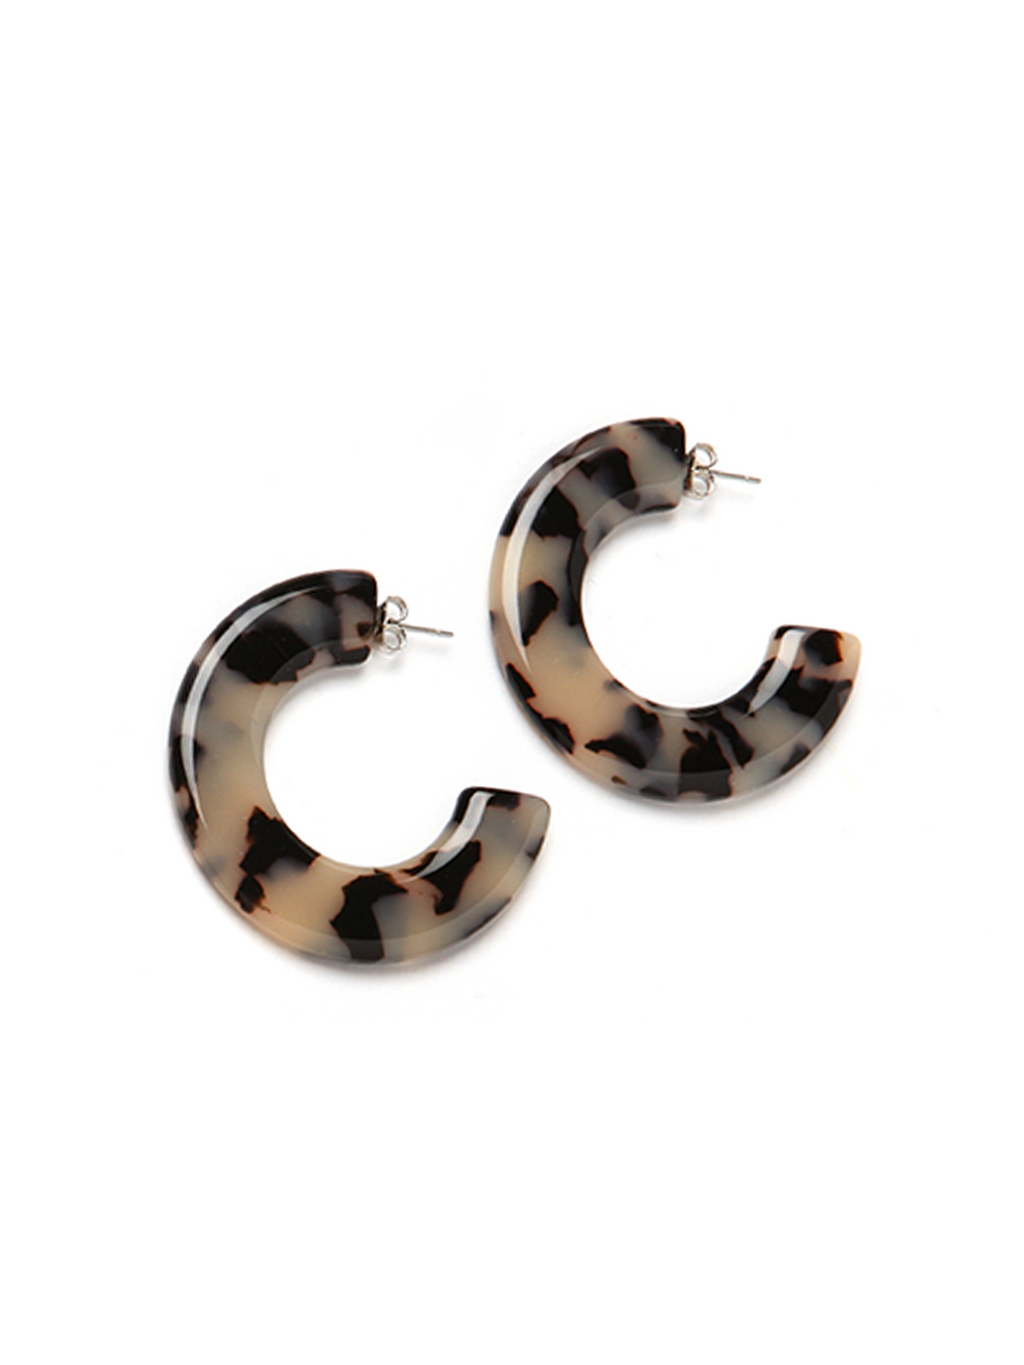 Pono Gia Resin Earring